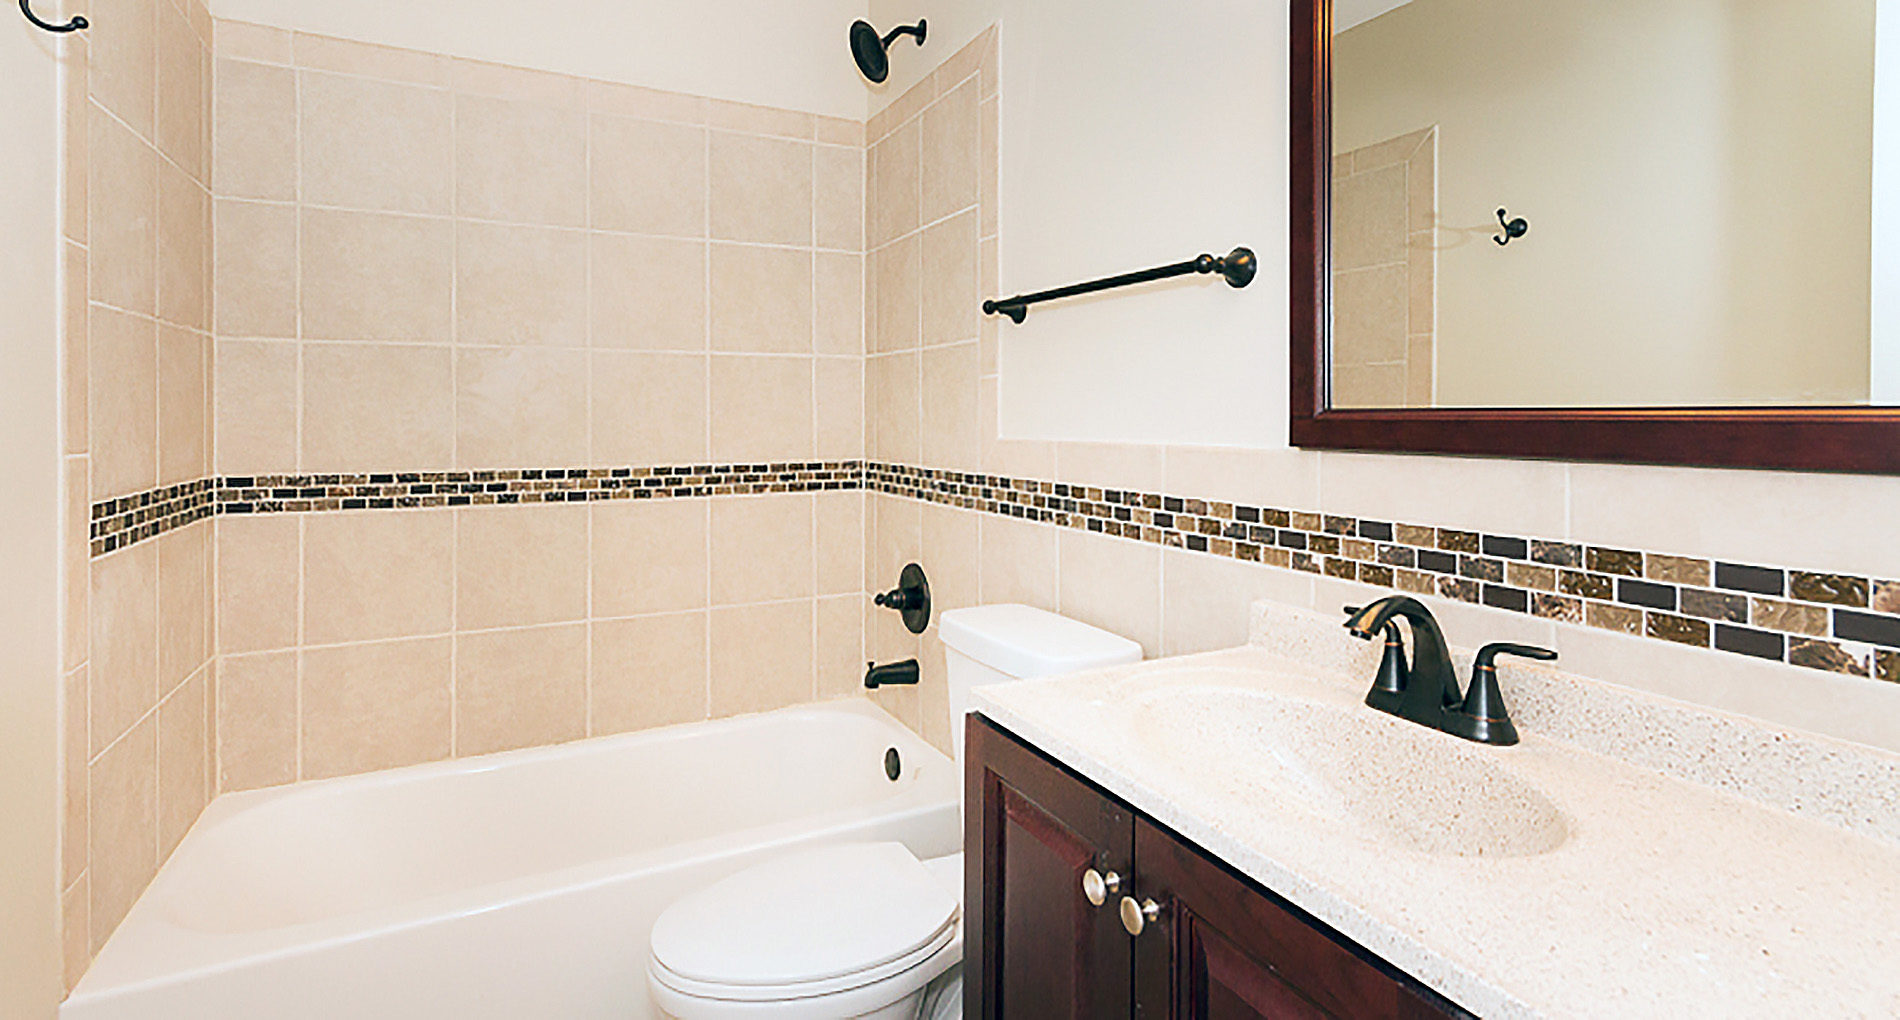 Bathroom Remodeling & Design in St. Louis | Alair Homes St. Louis